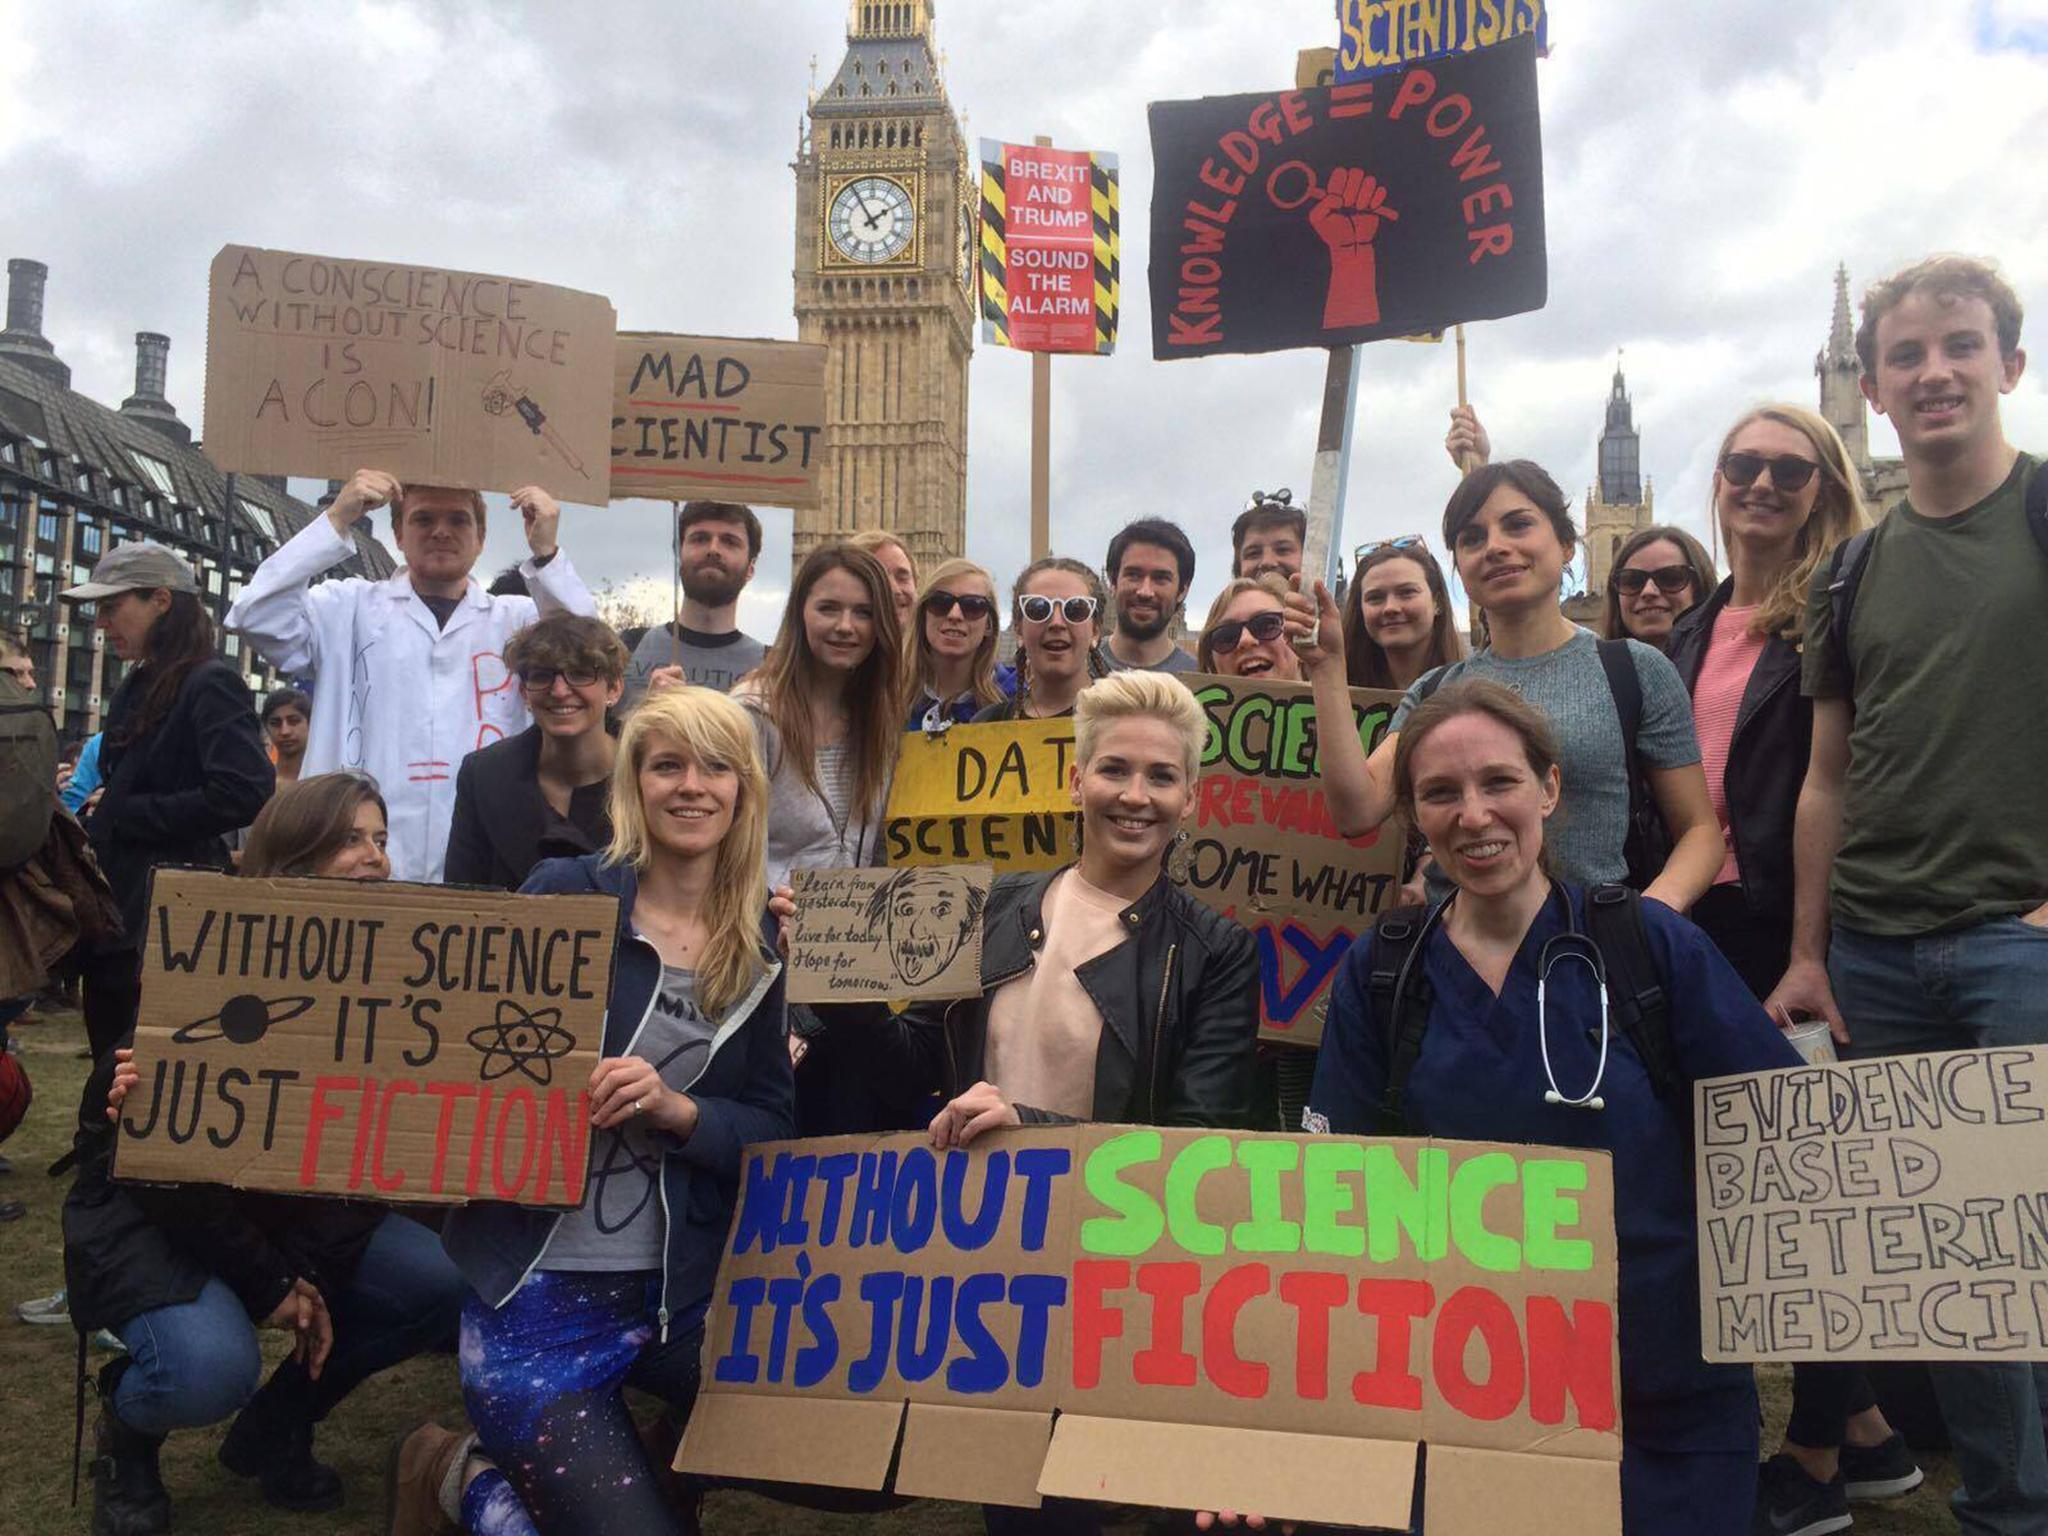 March For Science Thousands Turns Out For London Protest As Part - The 20 funniest signs spotted at the march for science